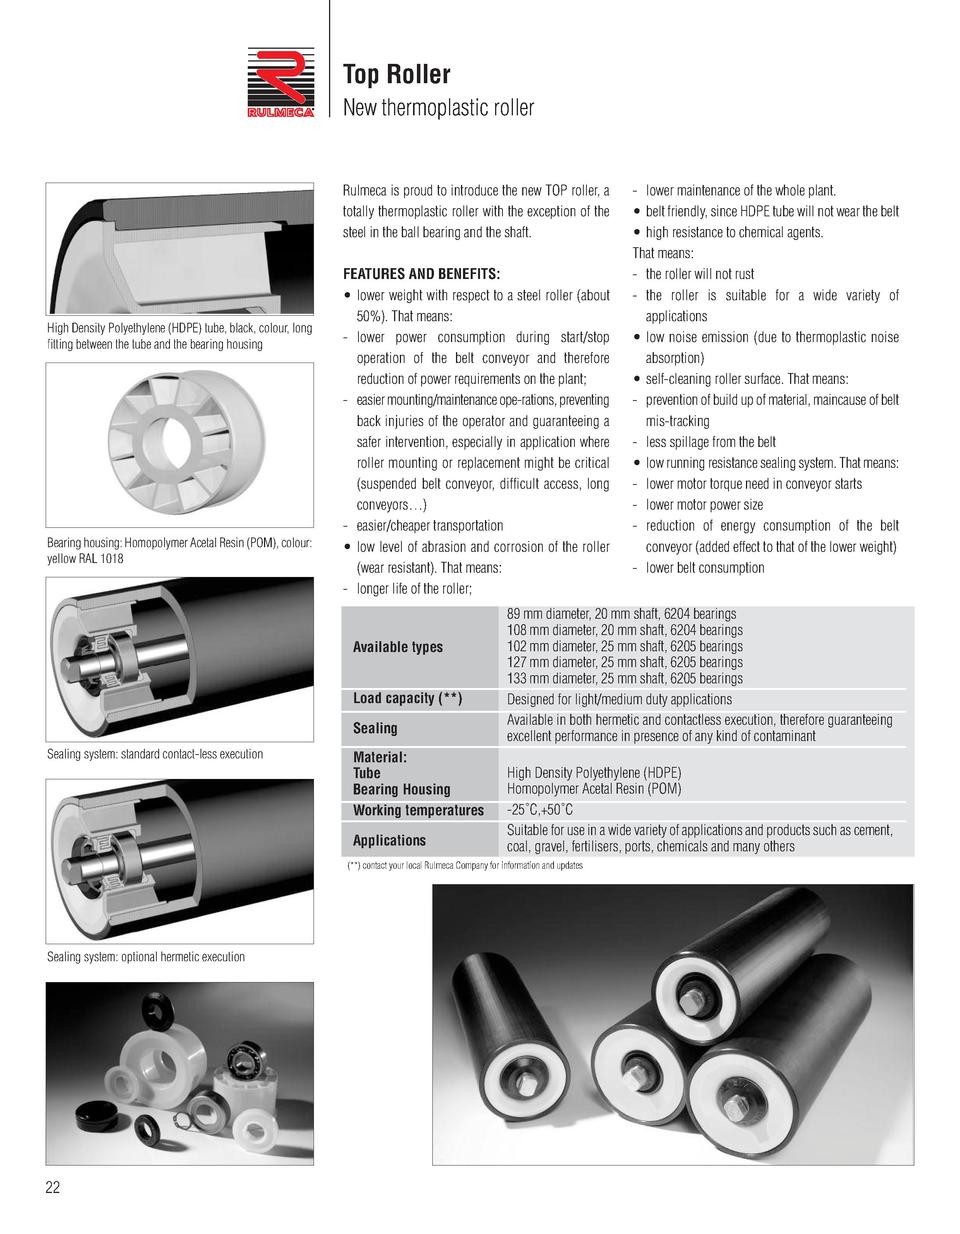 Top Roller New thermoplastic roller  Rulmeca is proud to introduce the new TOP roller, a totally thermoplastic roller with...